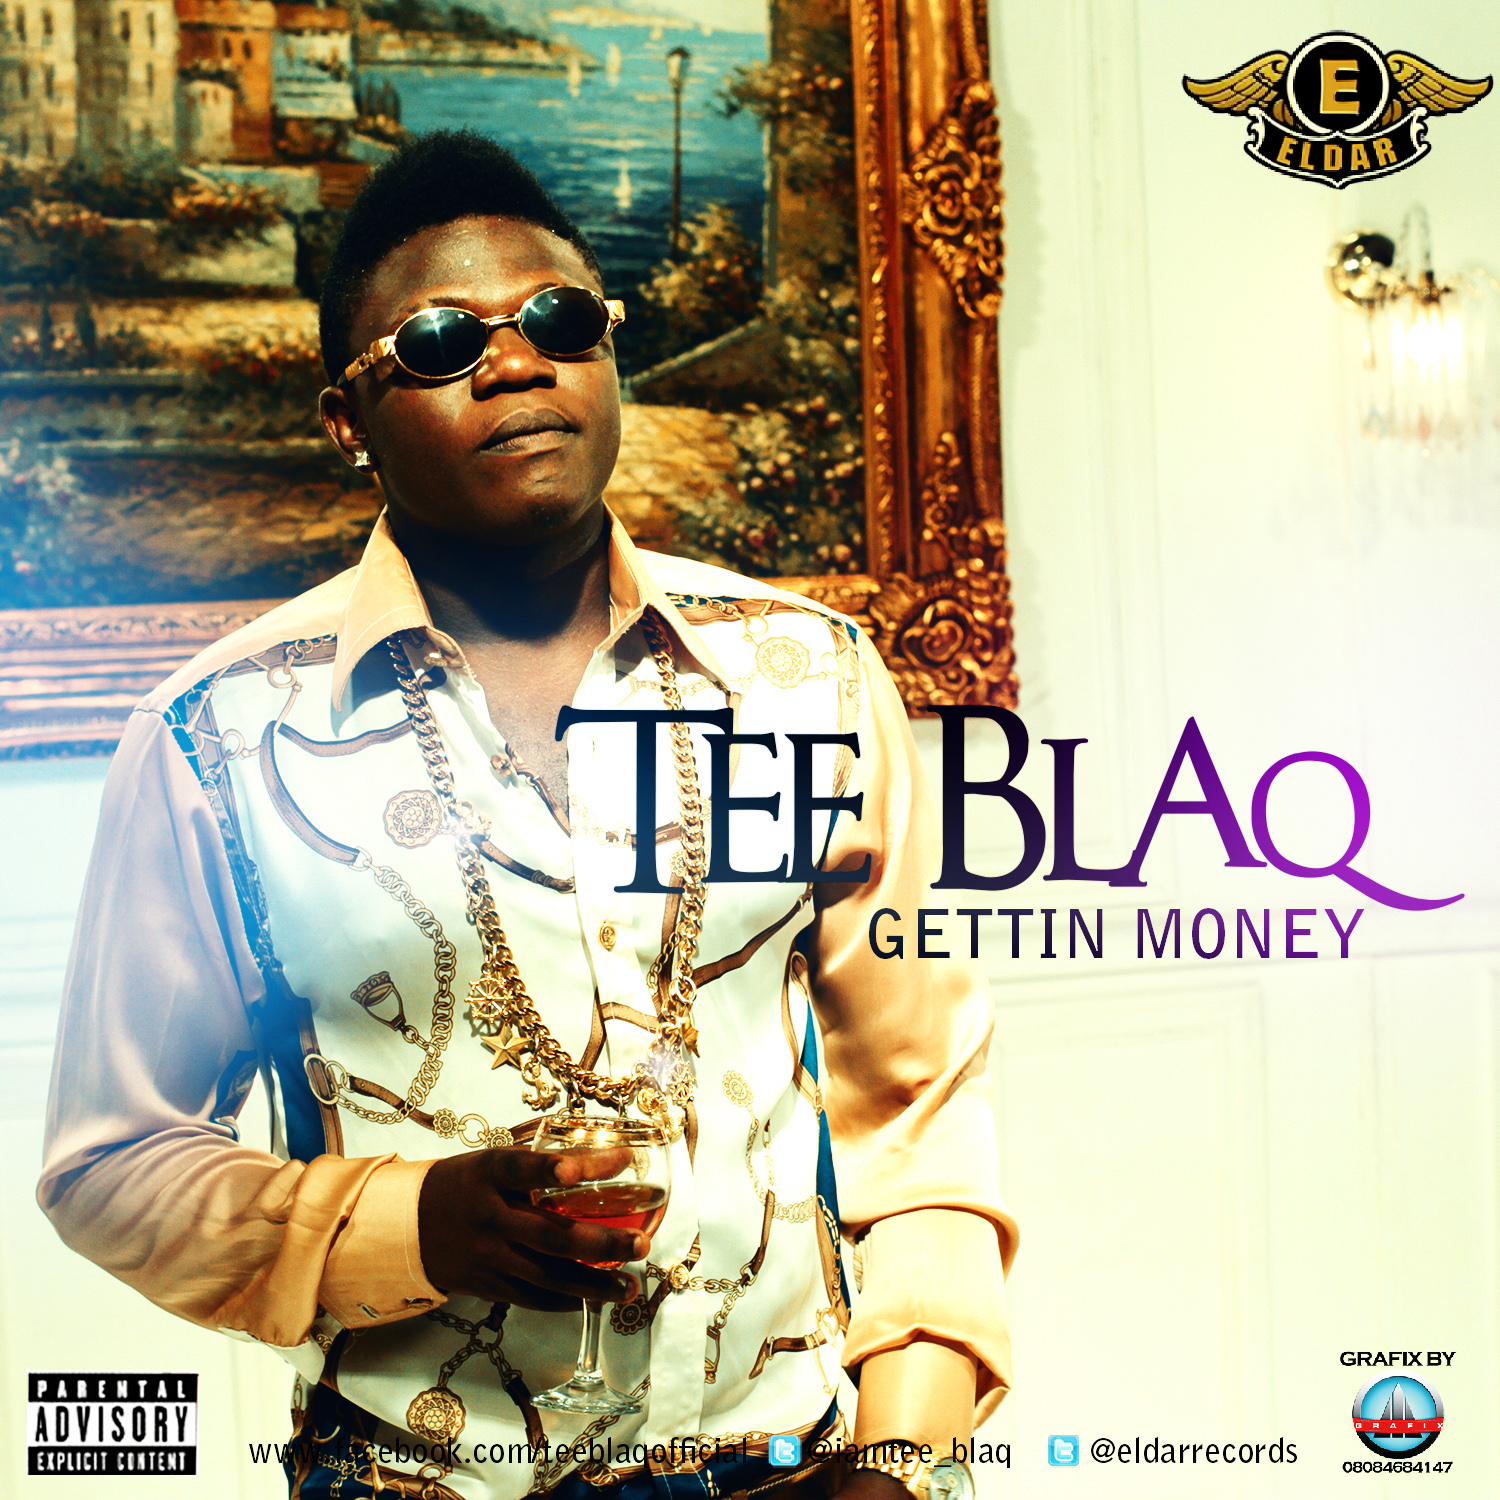 TEE BLAQ Making Money3